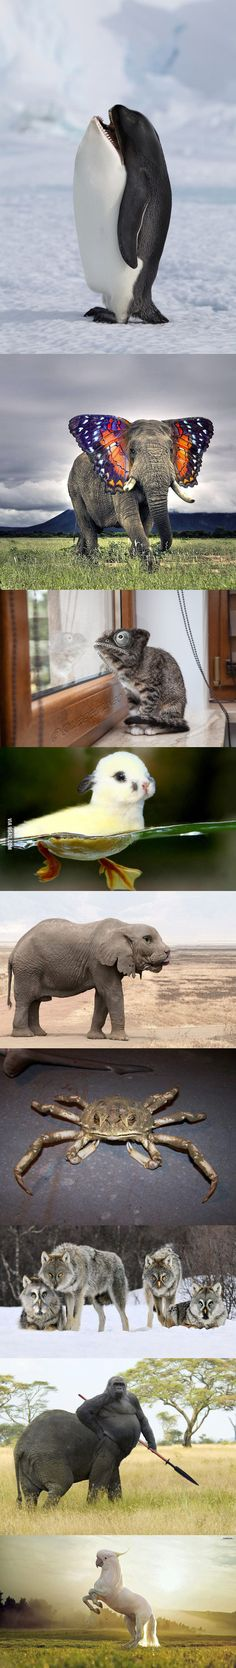 Majestic animal photoshopping - Panissue Share Majestic animal photoshopping<br> Majestic animal photoshopping Majestic animal photoshopping… my favorite is the last one :))))) Funny Shit, 9gag Funny, Funny Cute, Funny Memes, Hilarious, Harambe Meme, Funny Sports Pictures, Funny Animal Pictures, Best Funny Pictures